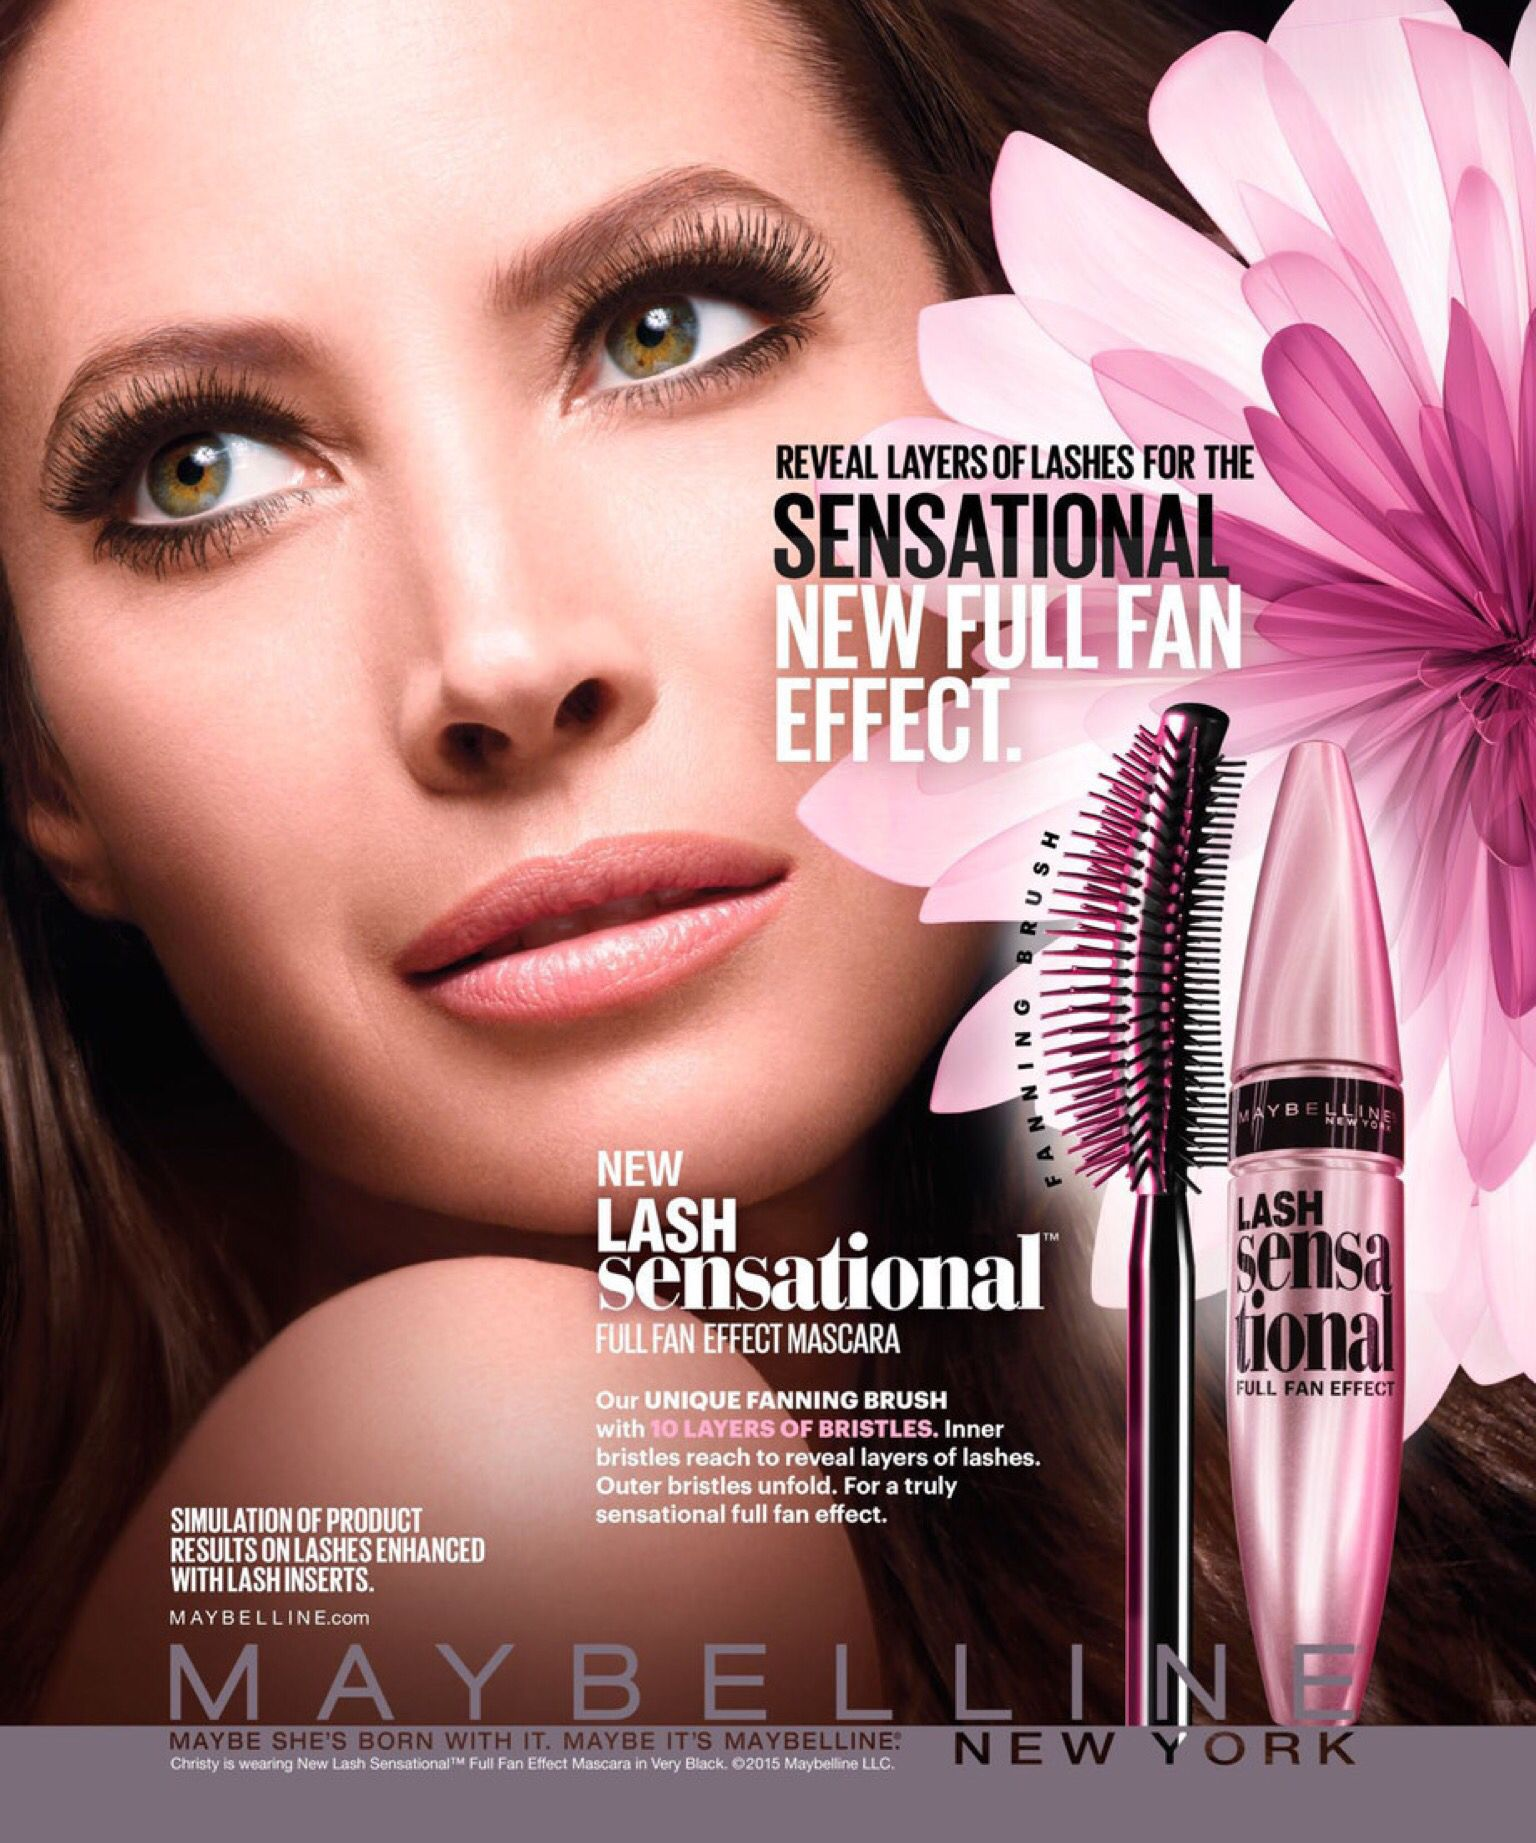 Maybelline Cosmetic Advertising | Maybelline cosmetics ...